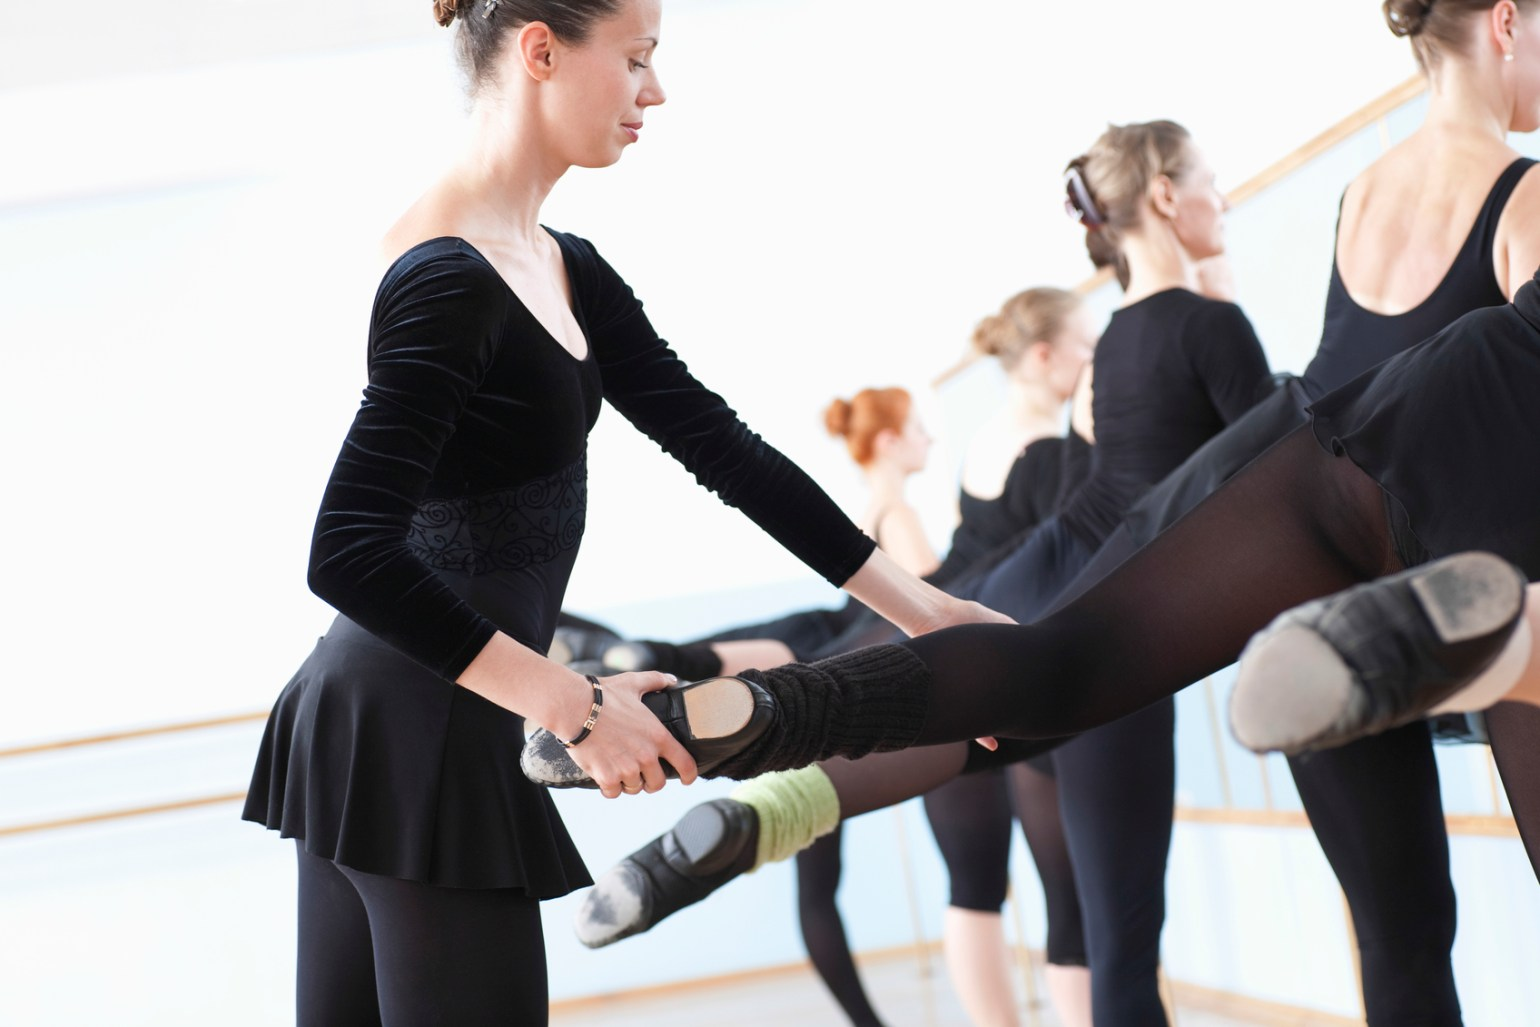 Ballet Teacher Adjusting Foot Positions Of Ballerinas